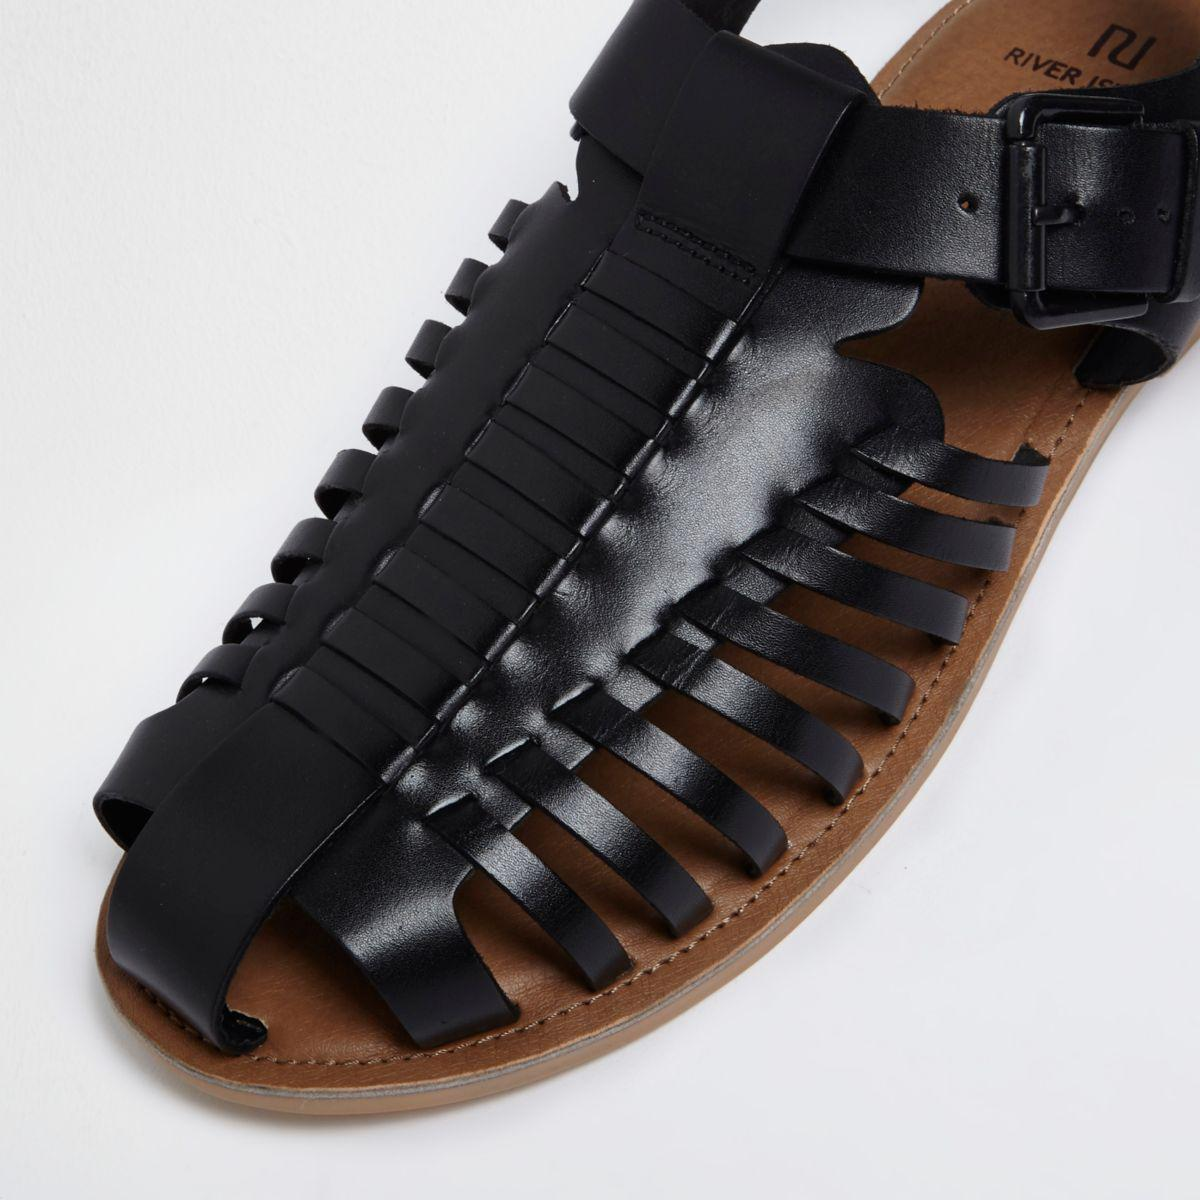 River Island Black Leather Fisherman Sandals In Black For